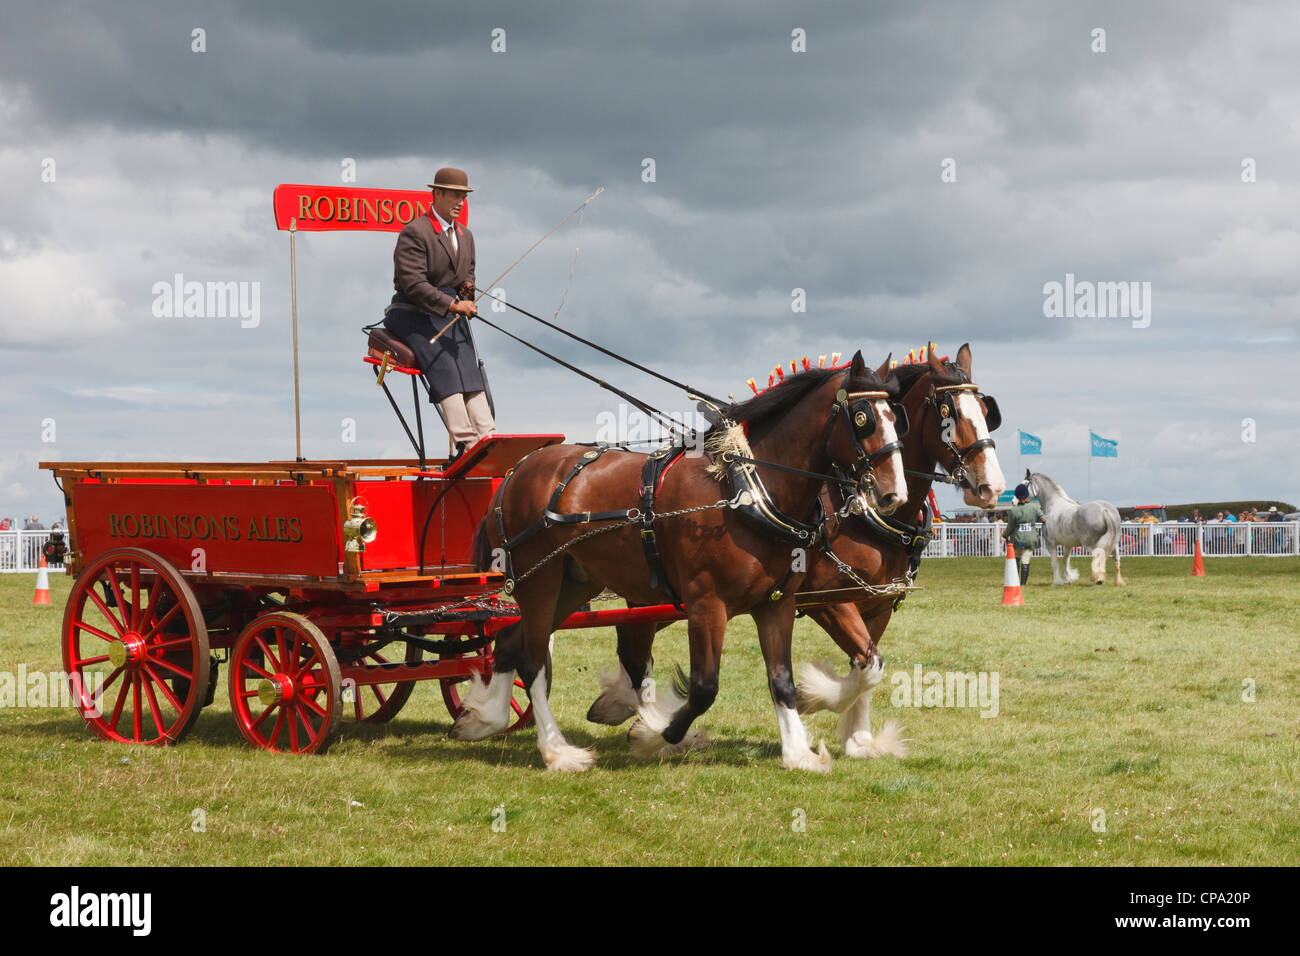 Two Shire horses pulling a Robinsons Ales Brewers Dray at the Anglesey Show in the Mona showground. Anglesey, North - Stock Image